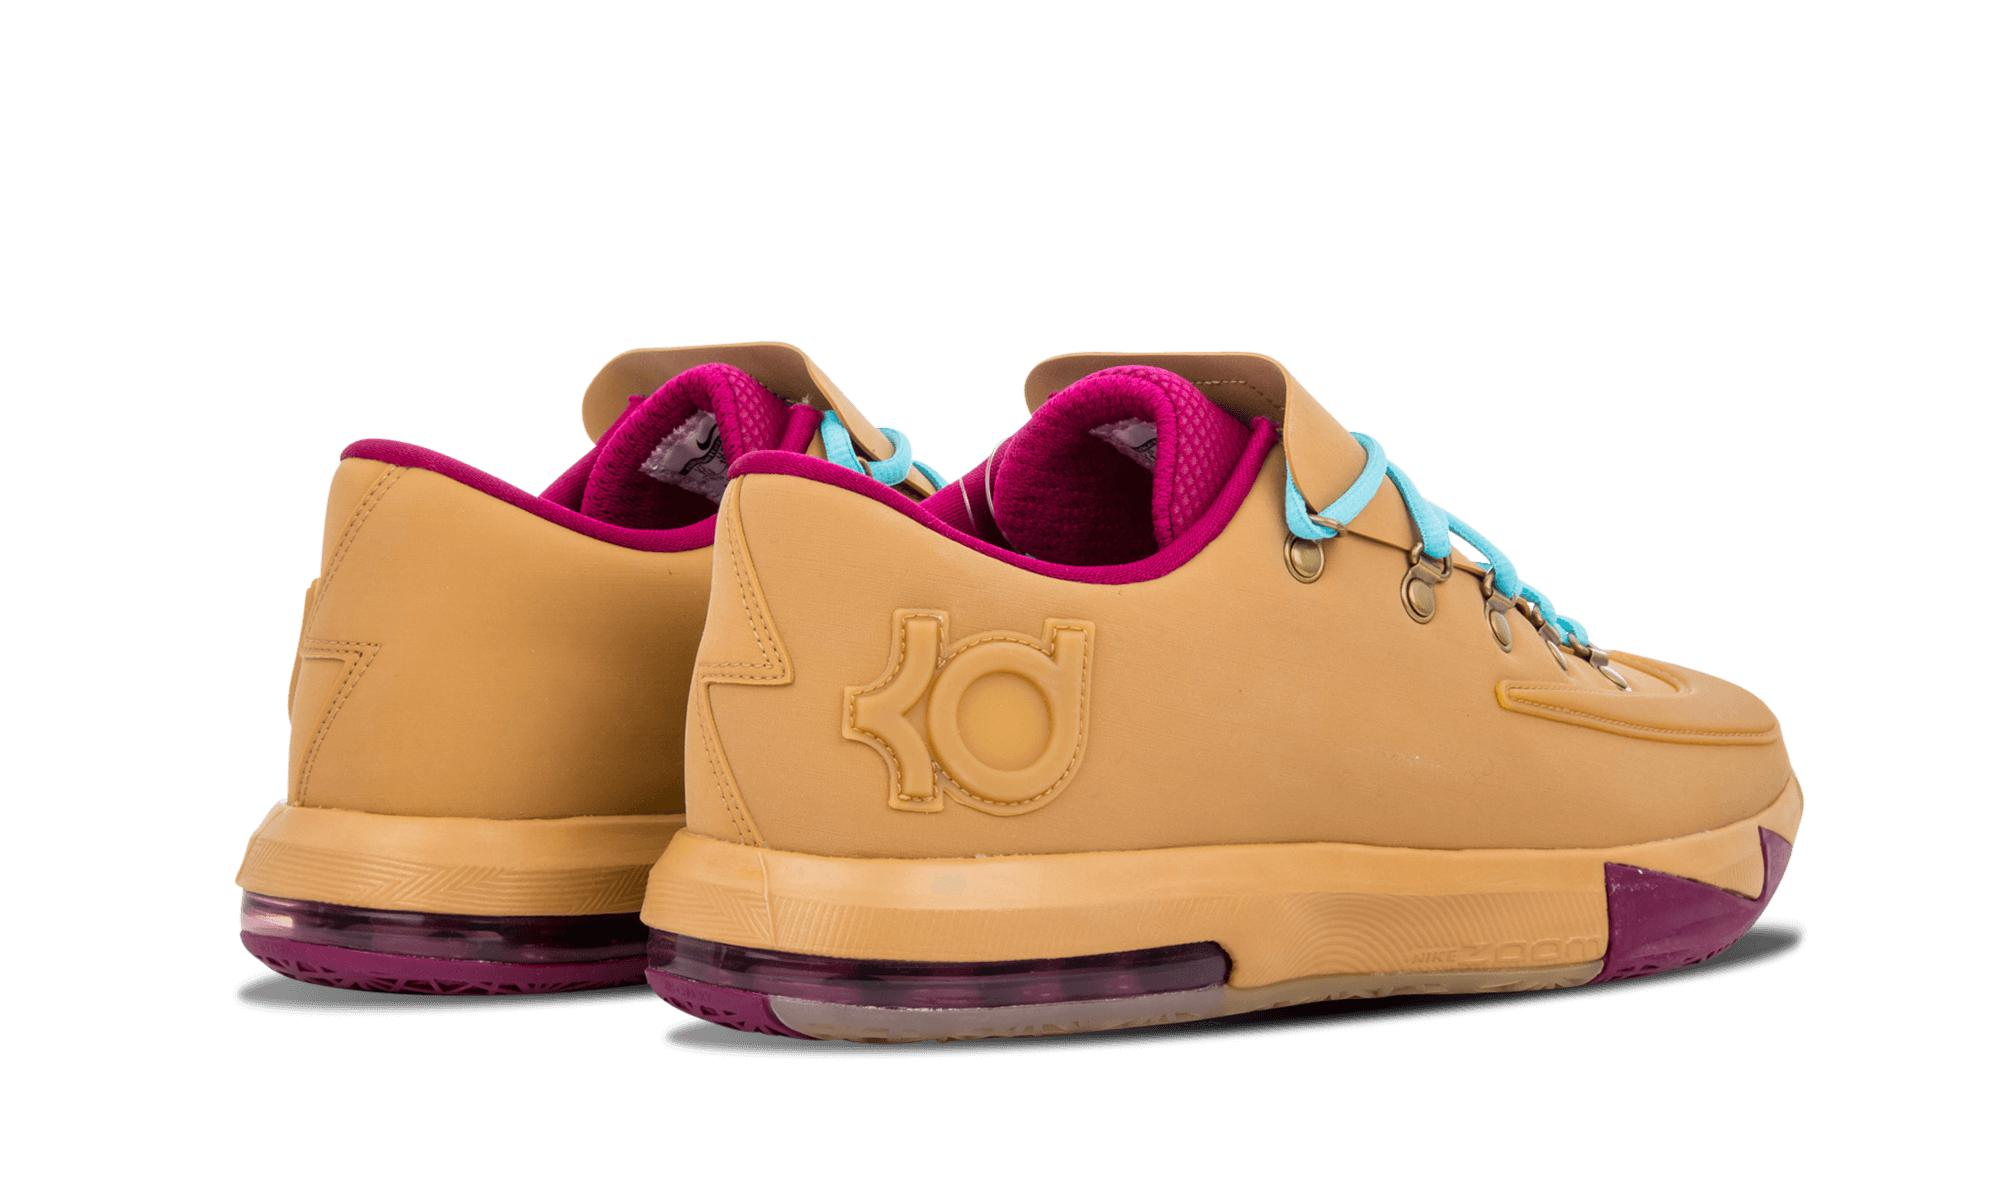 2b35cff314e5 Nike - Multicolor Kd 6 Ext Gum Qs for Men - Lyst. View fullscreen